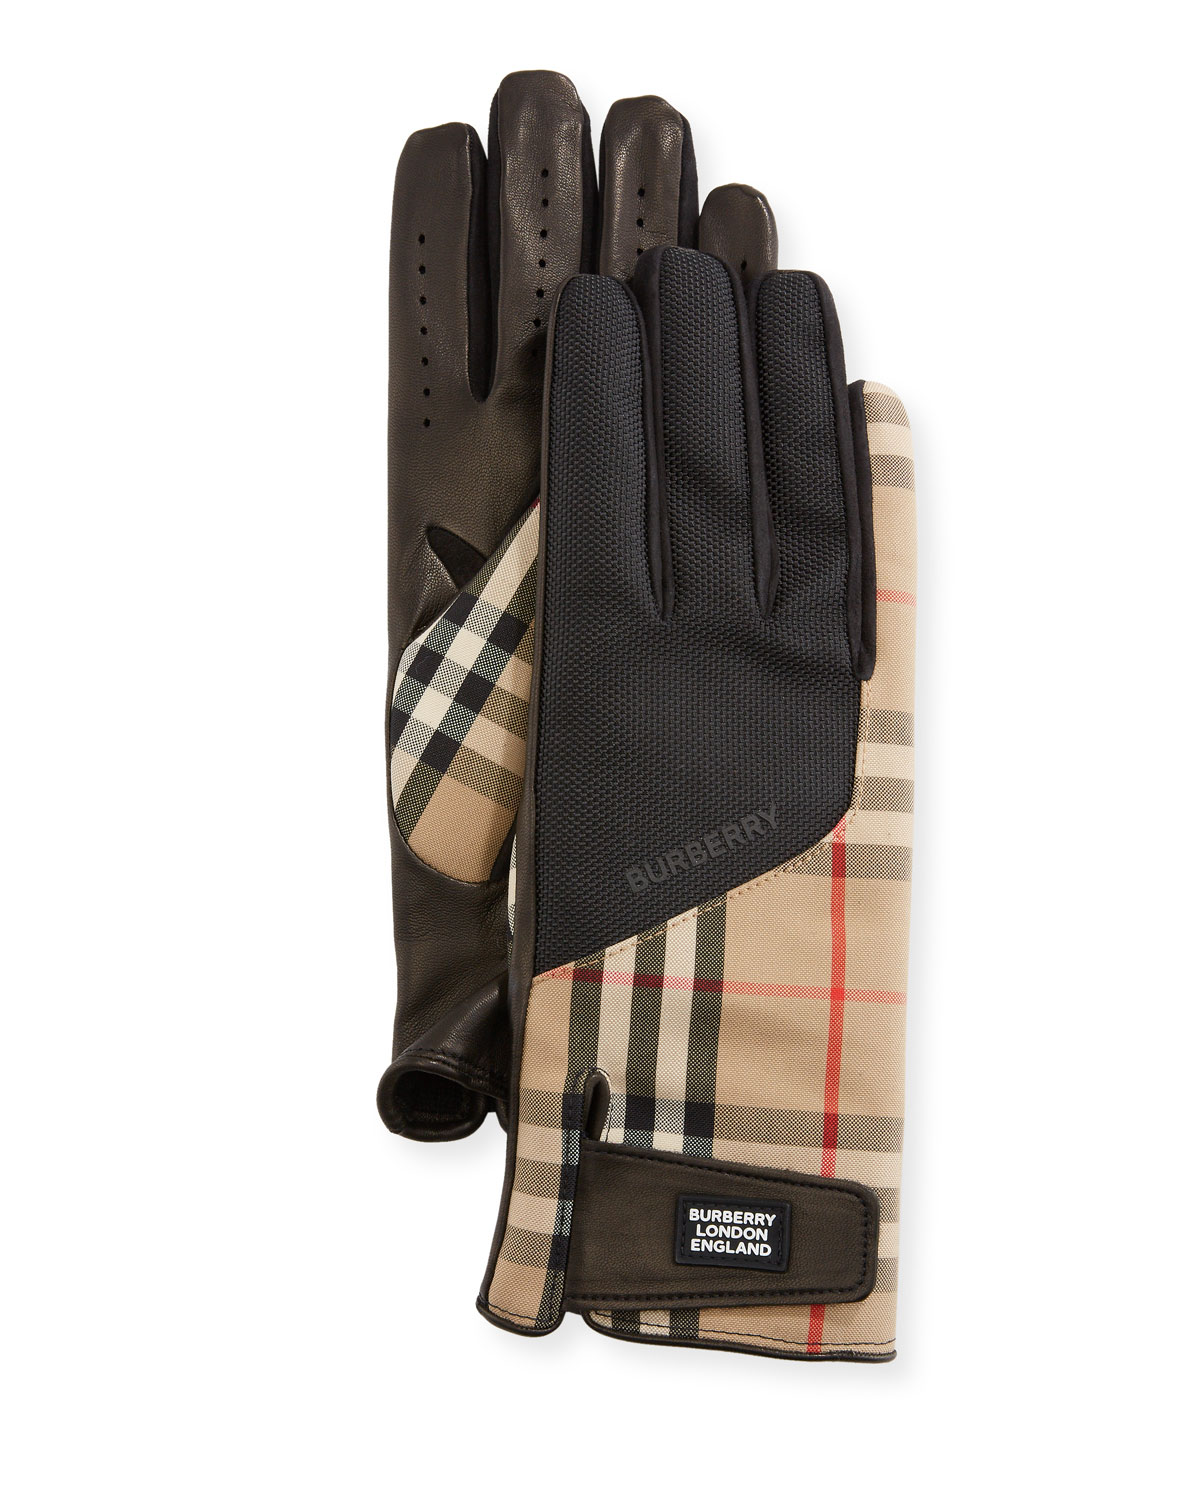 Burberry Gloves MEN'S LEATHER-PALM BIMATERIAL GLOVES